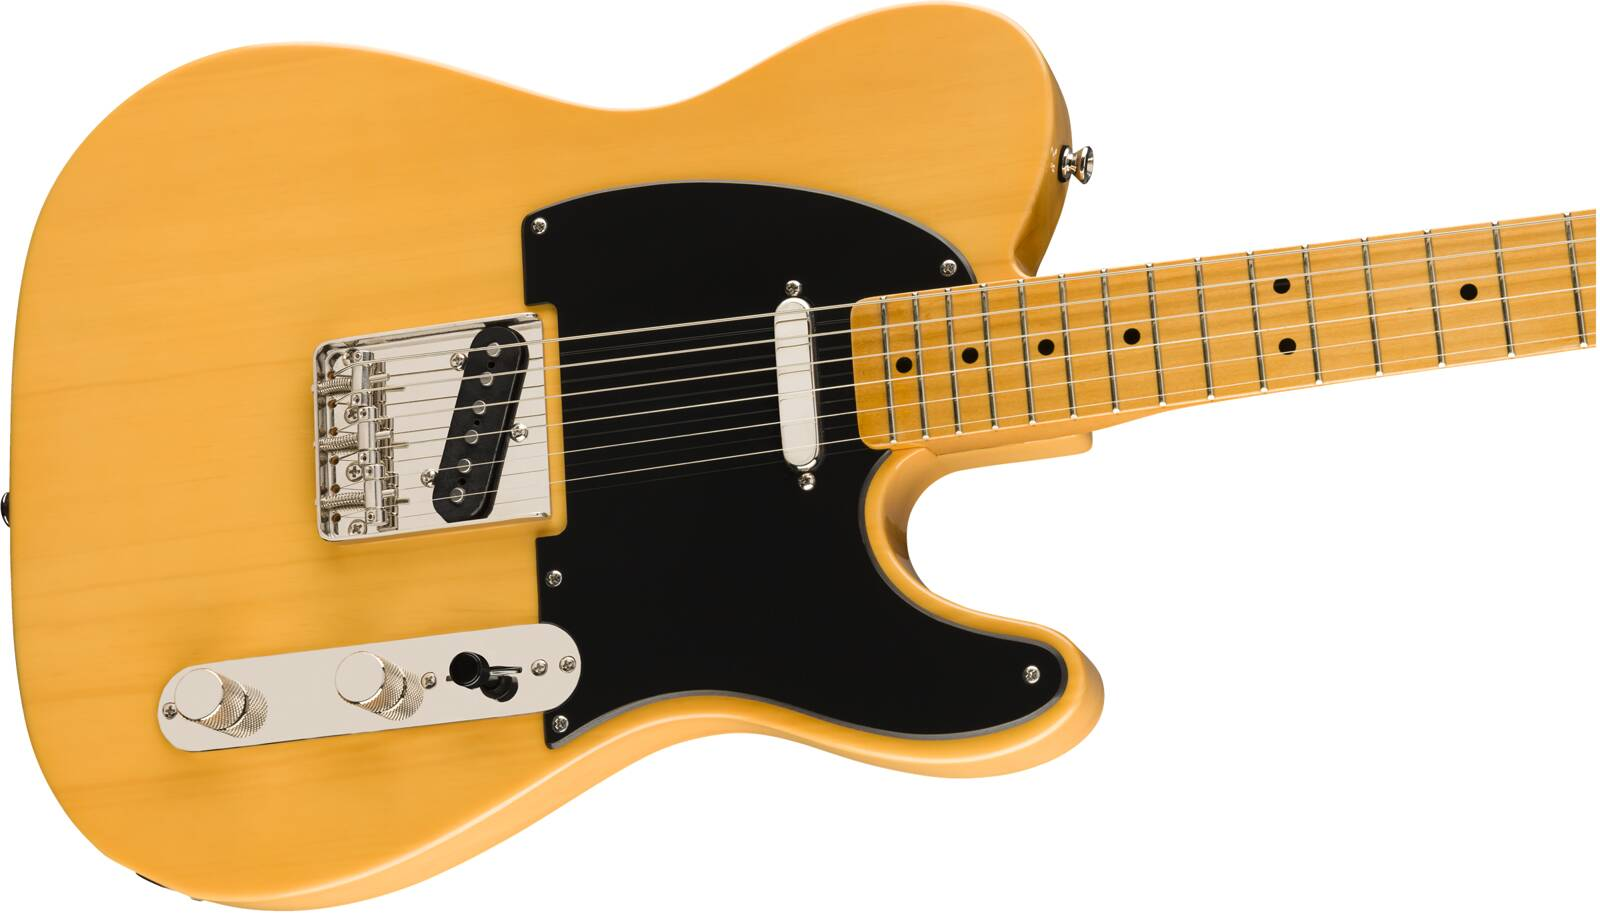 Squier Classic Vibe '50s Telecaster Maple Fingerboard Butterscotch Blonde : photo 3